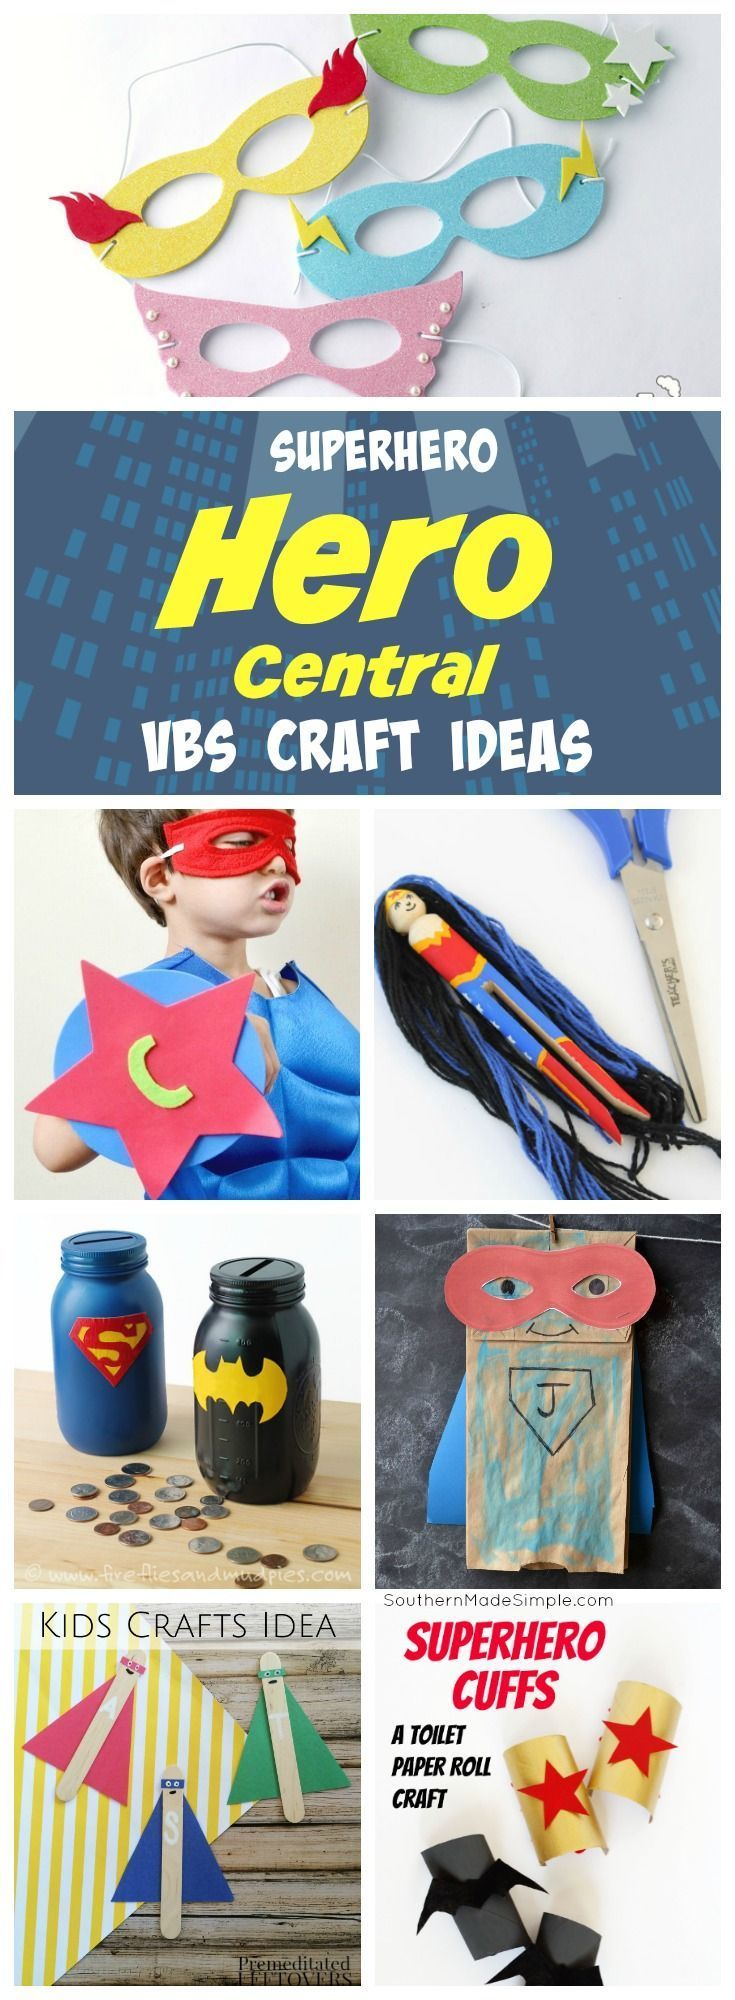 Vacation Bible School Craft Ideas Kids Part - 18: 12 Super Hero Themed Craft Ideas - Perfect For Hero Central VBS 2017!